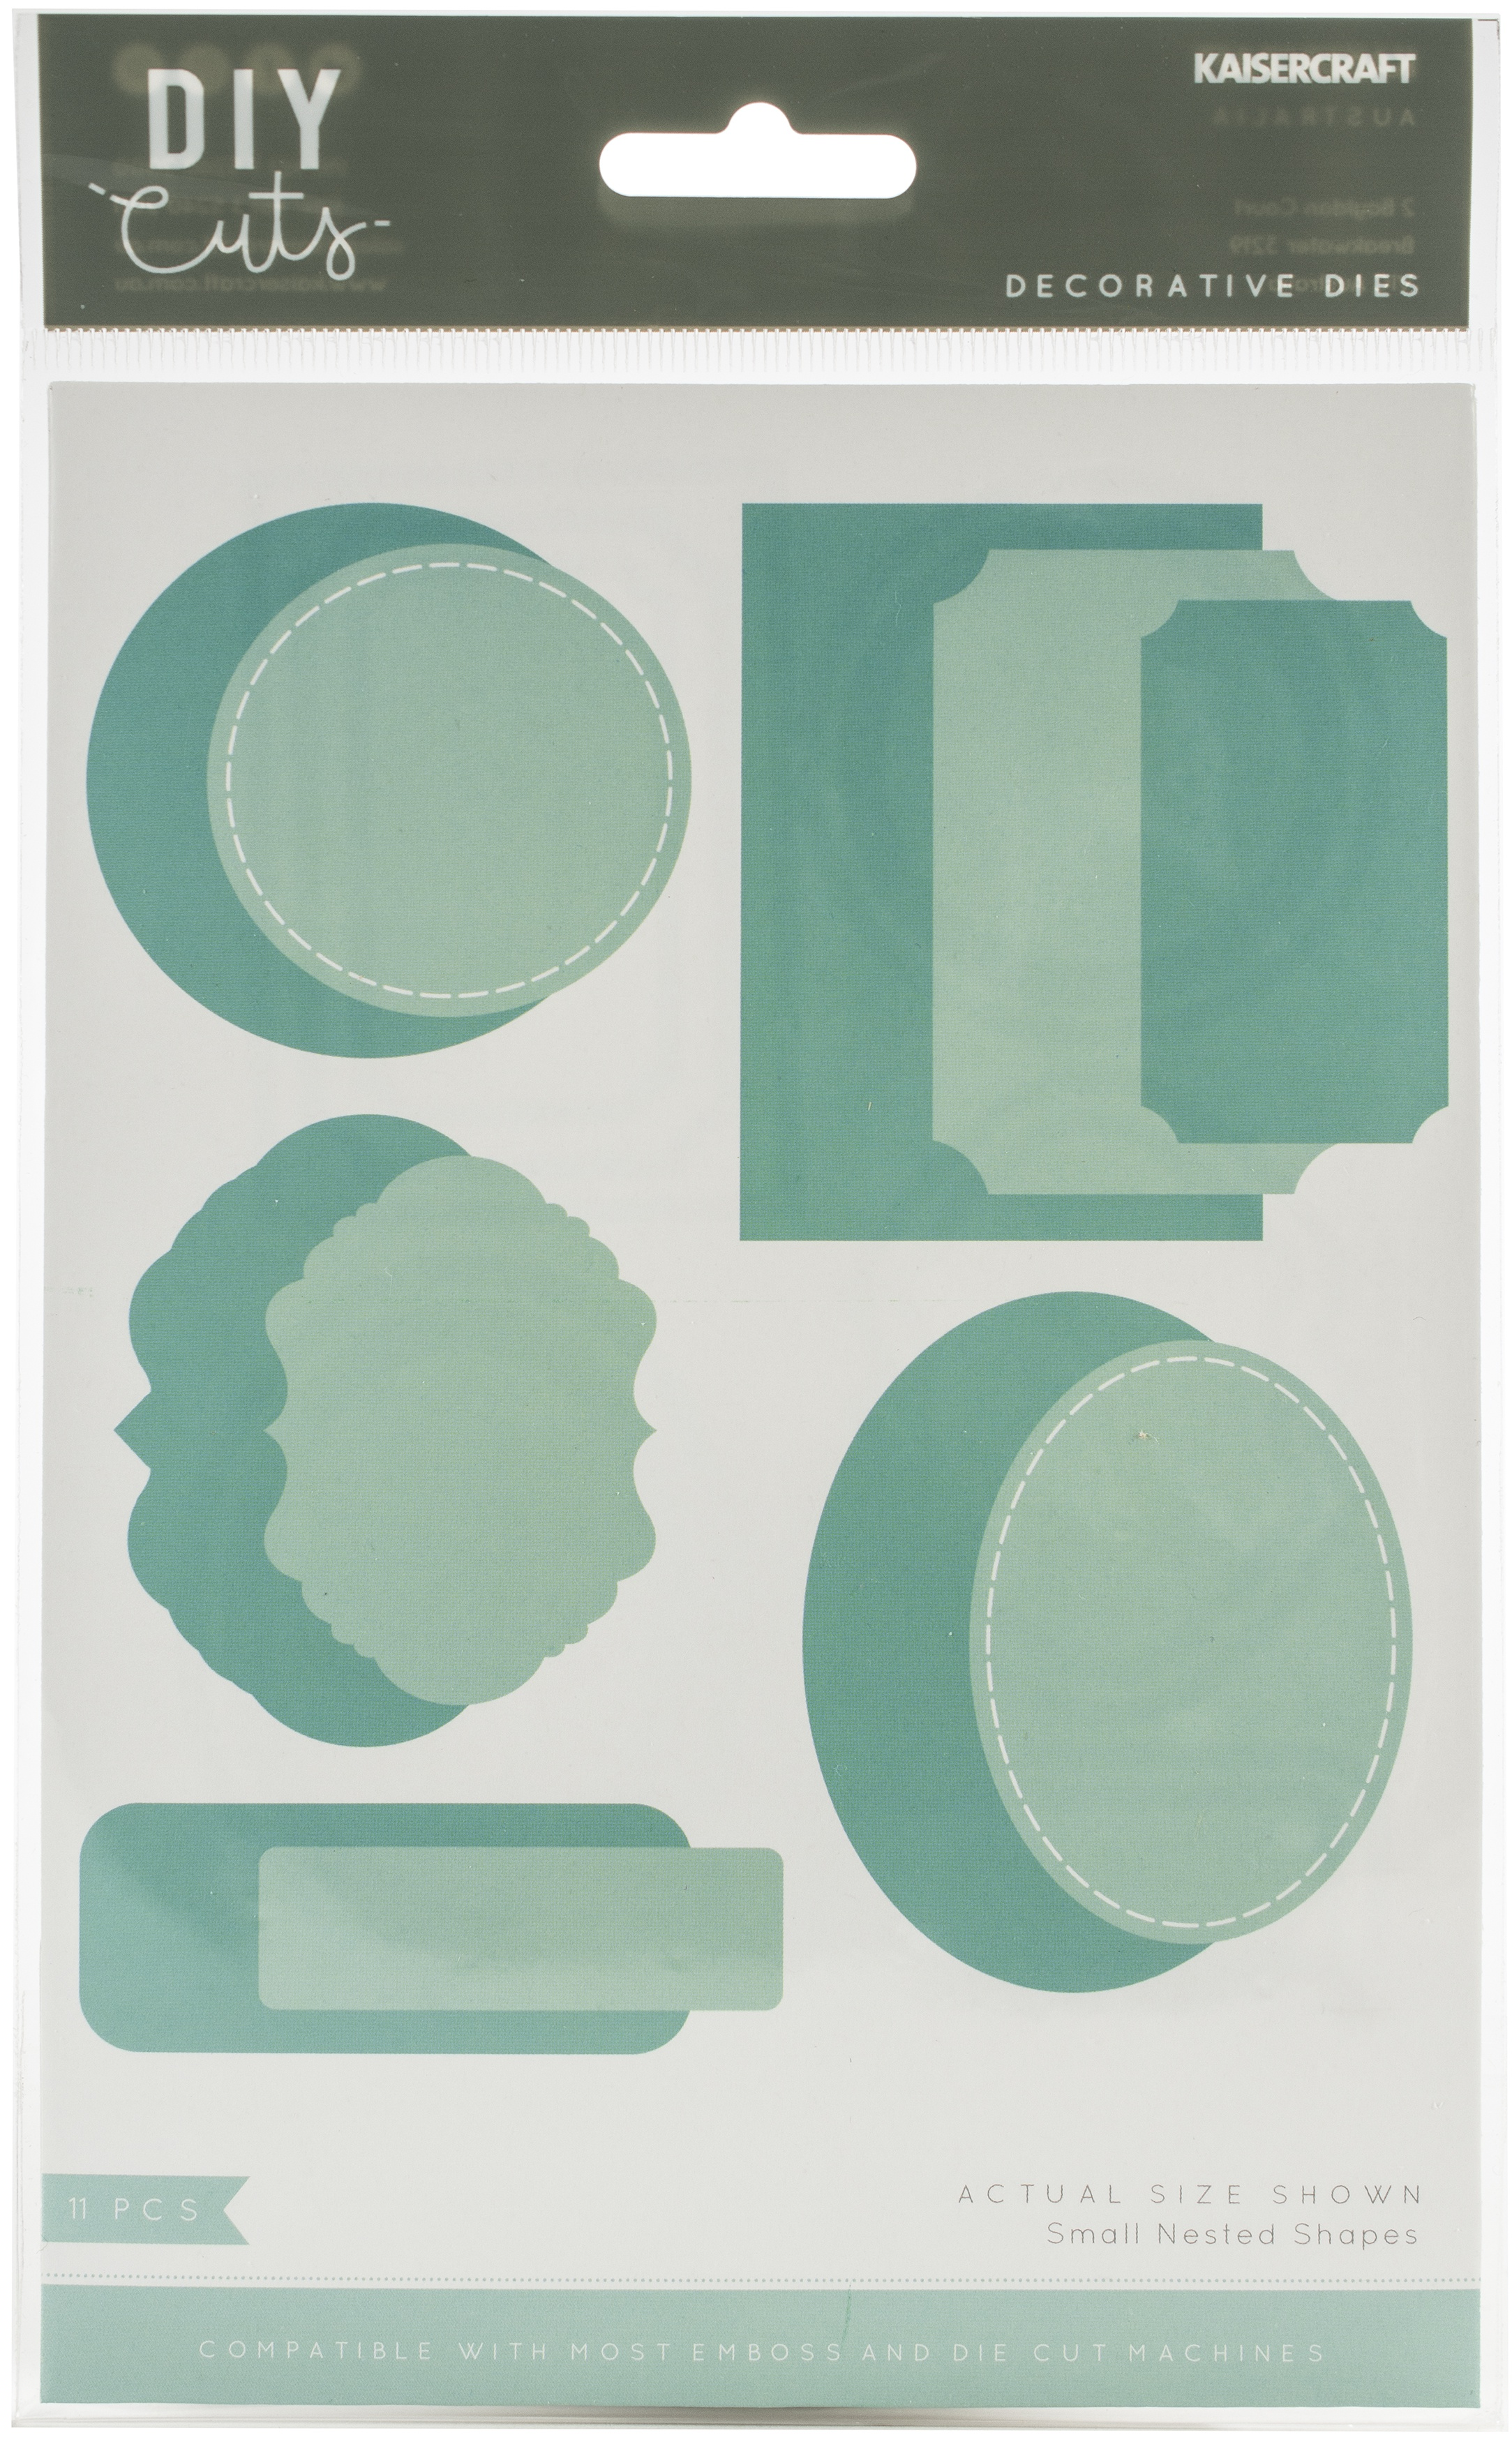 Kaisercraft Decorative Die-Small Nested Shapes